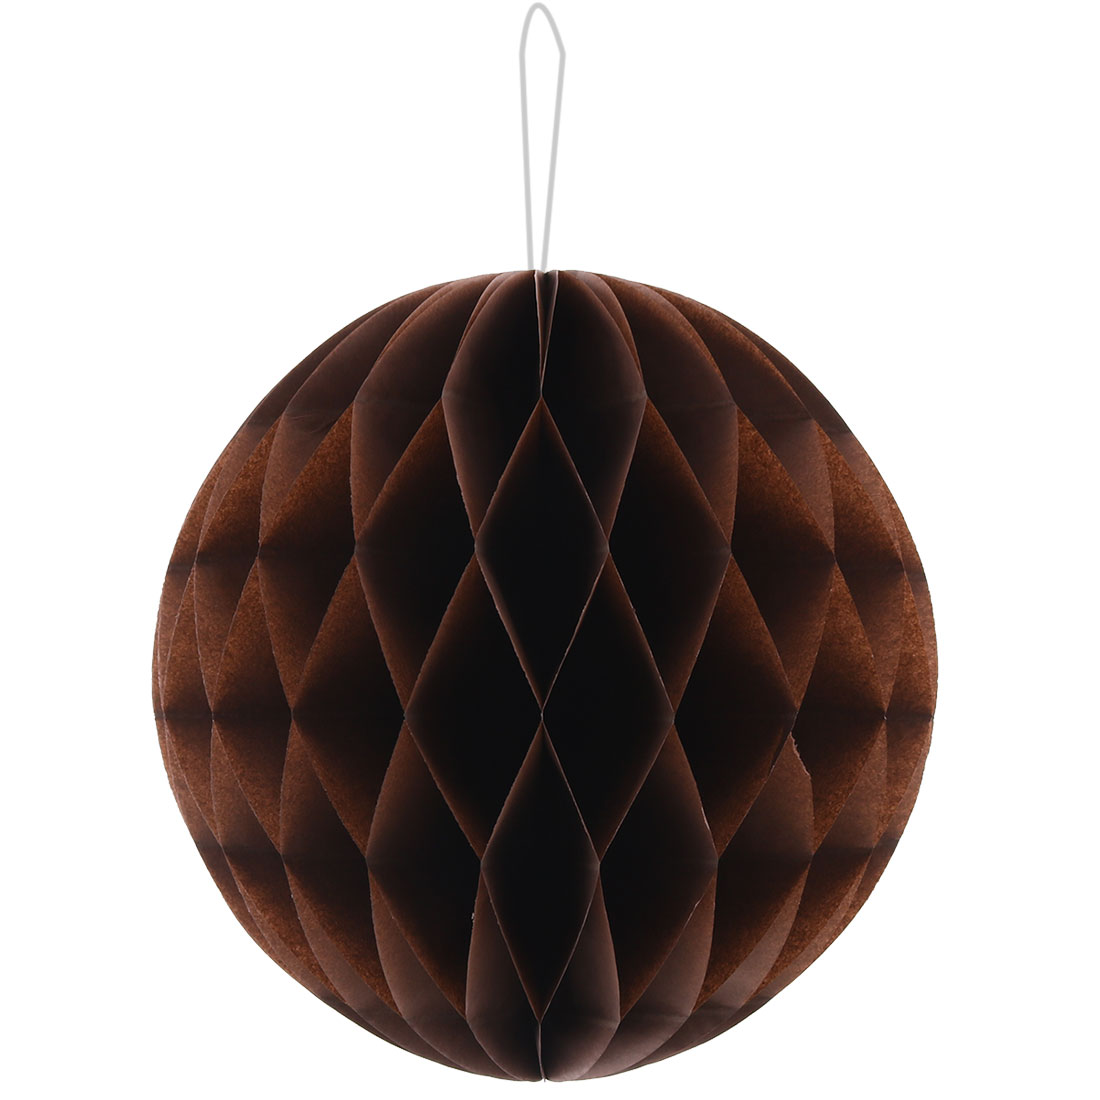 Festival Birthday Paper Foldable String Hanging Lamp Honeycomb Ball Coffee Color 10 Inch Dia